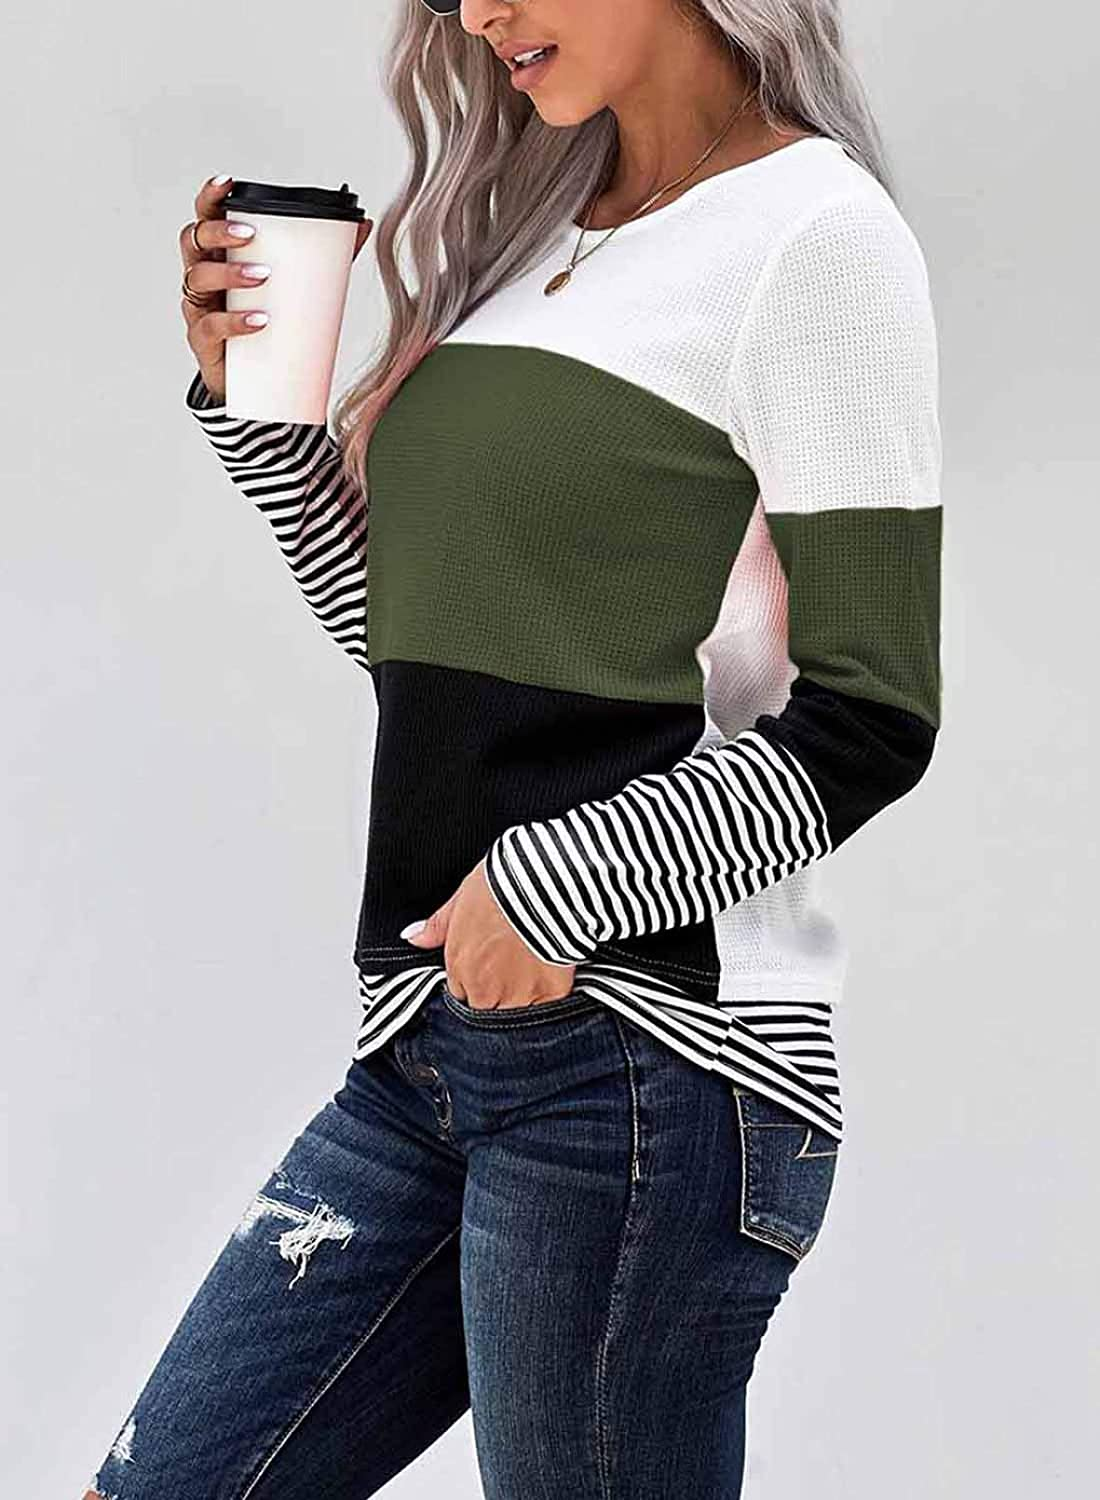 Eytino Women Casual Long Sleeve Round Neck Colorblock Loose Tunic Shirt Blouse Tops S-XXL